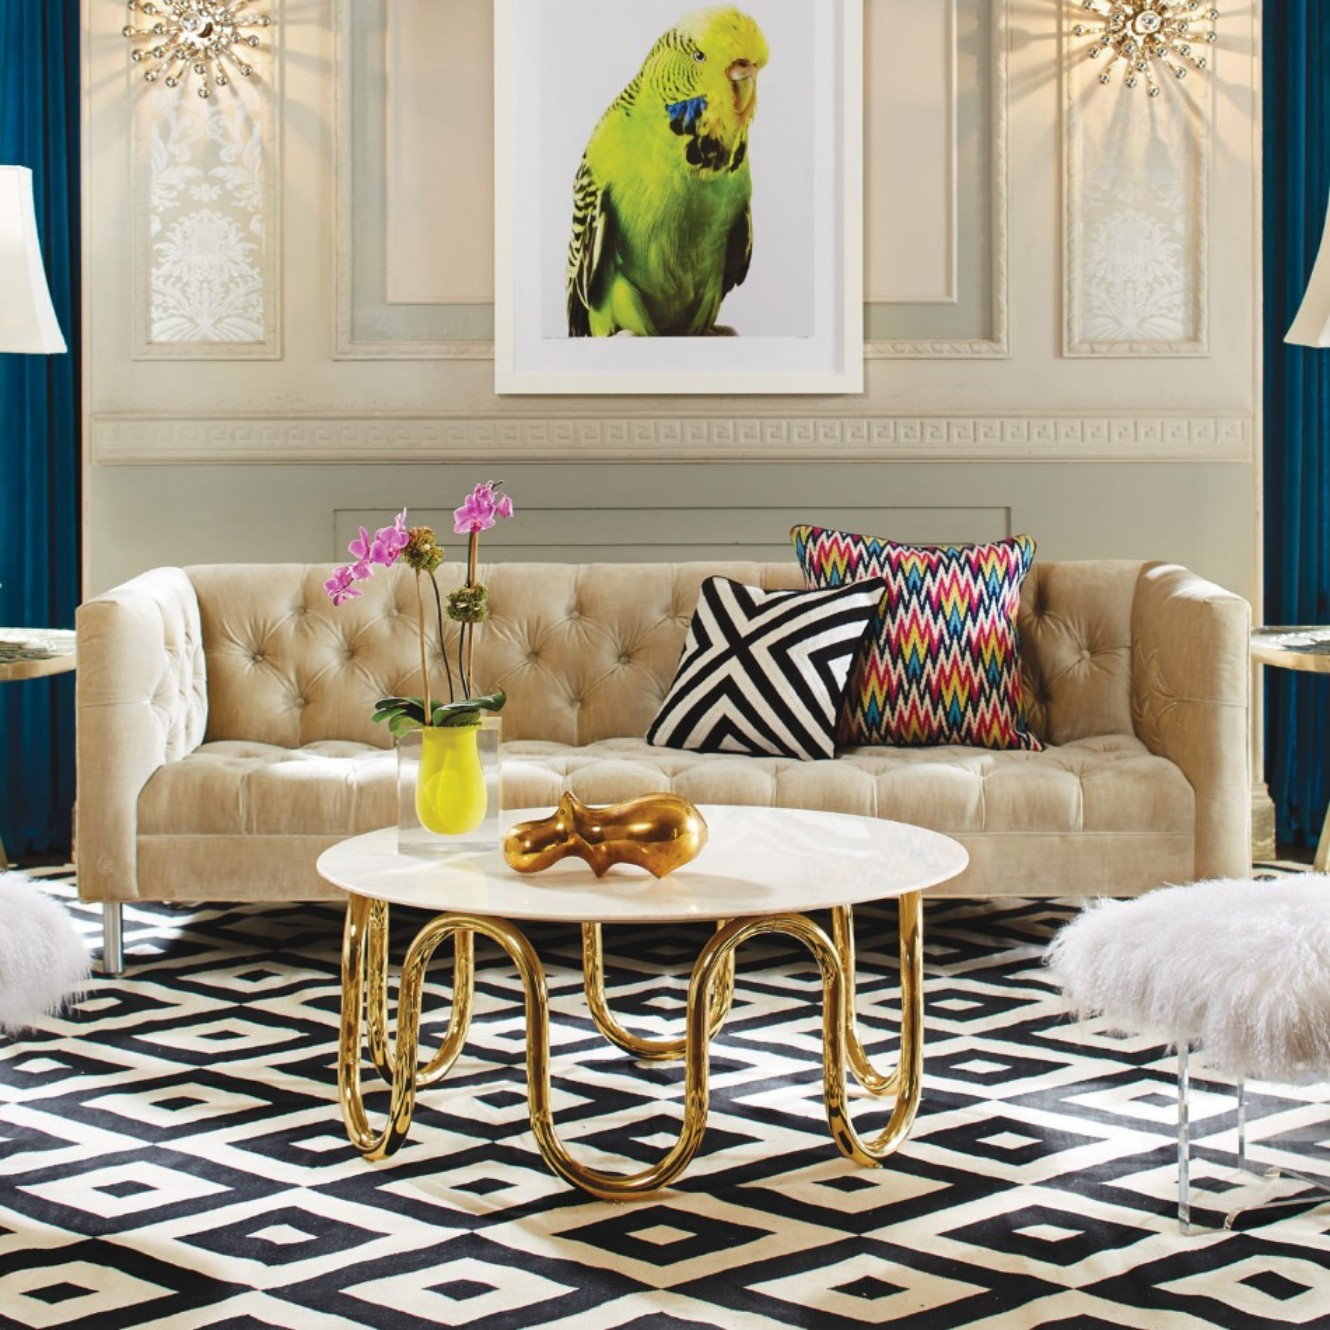 Jonathan Adler 10 Coffee And Side Tables For This Summer By Jonathan Adler modern baxter sofa fall13 jonathan adler1